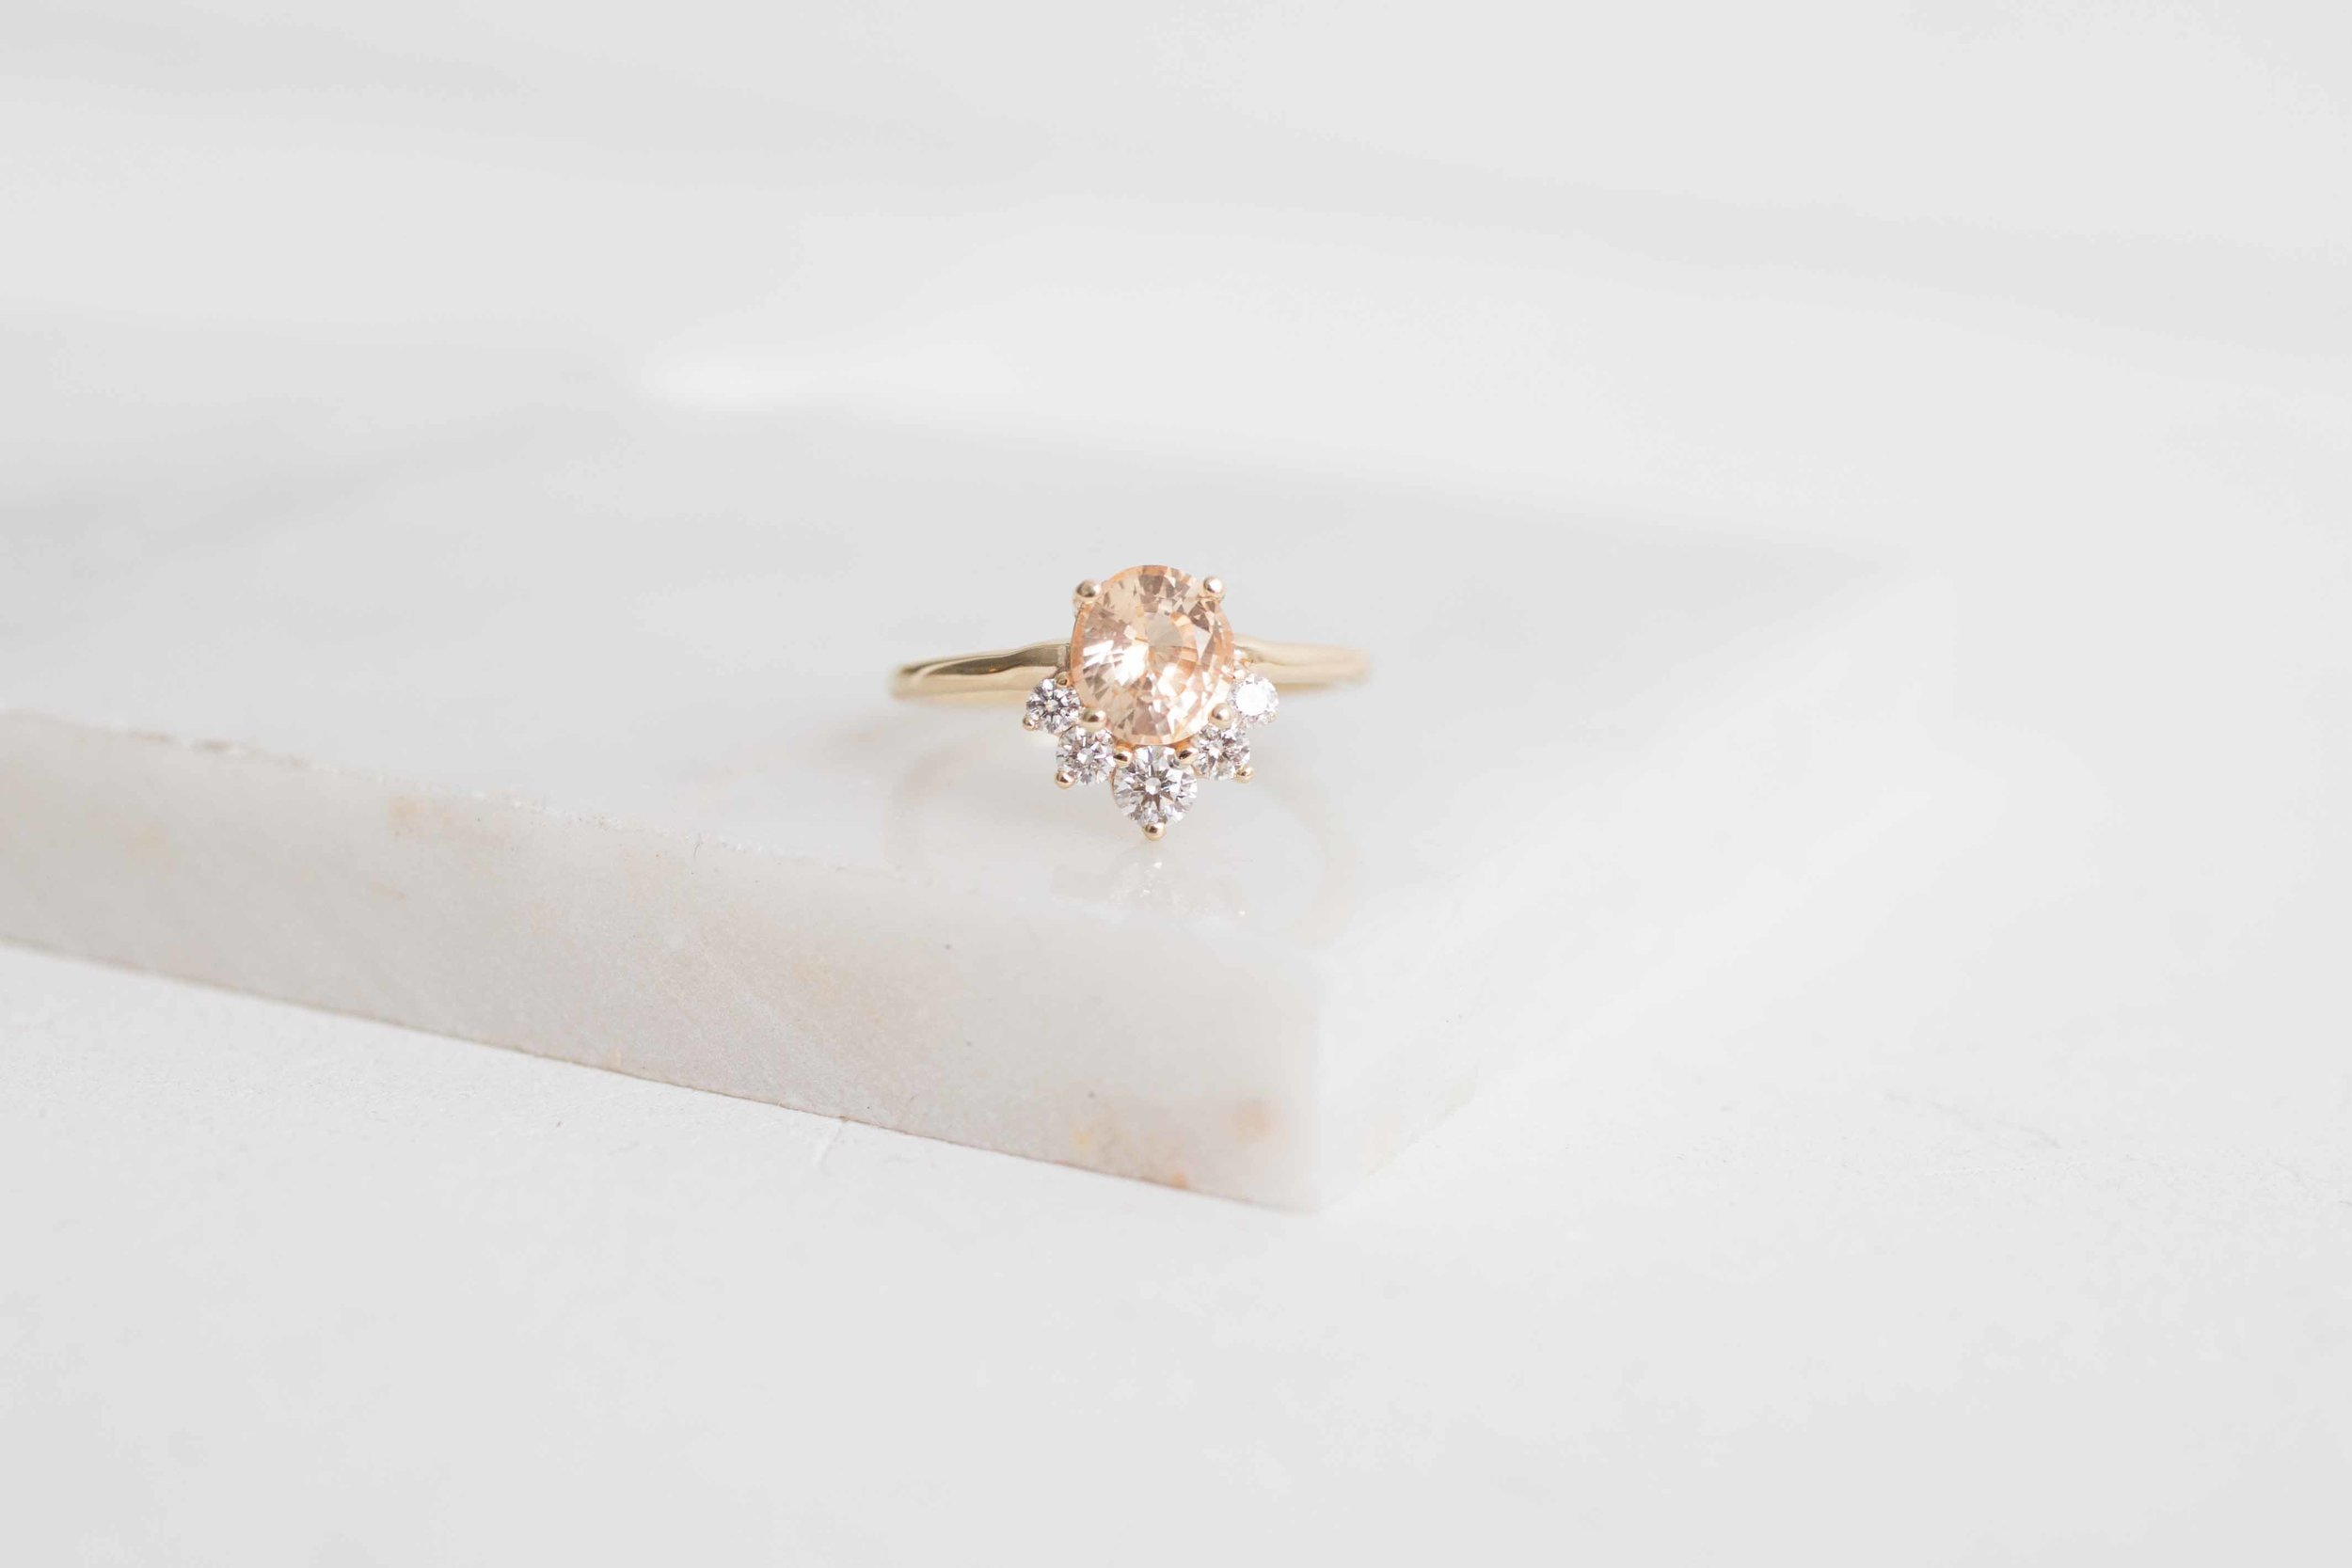 Daniel Cooper Custom Oval Apricot Sapphire + Diamond Cluster Engagament Ring-4.jpg